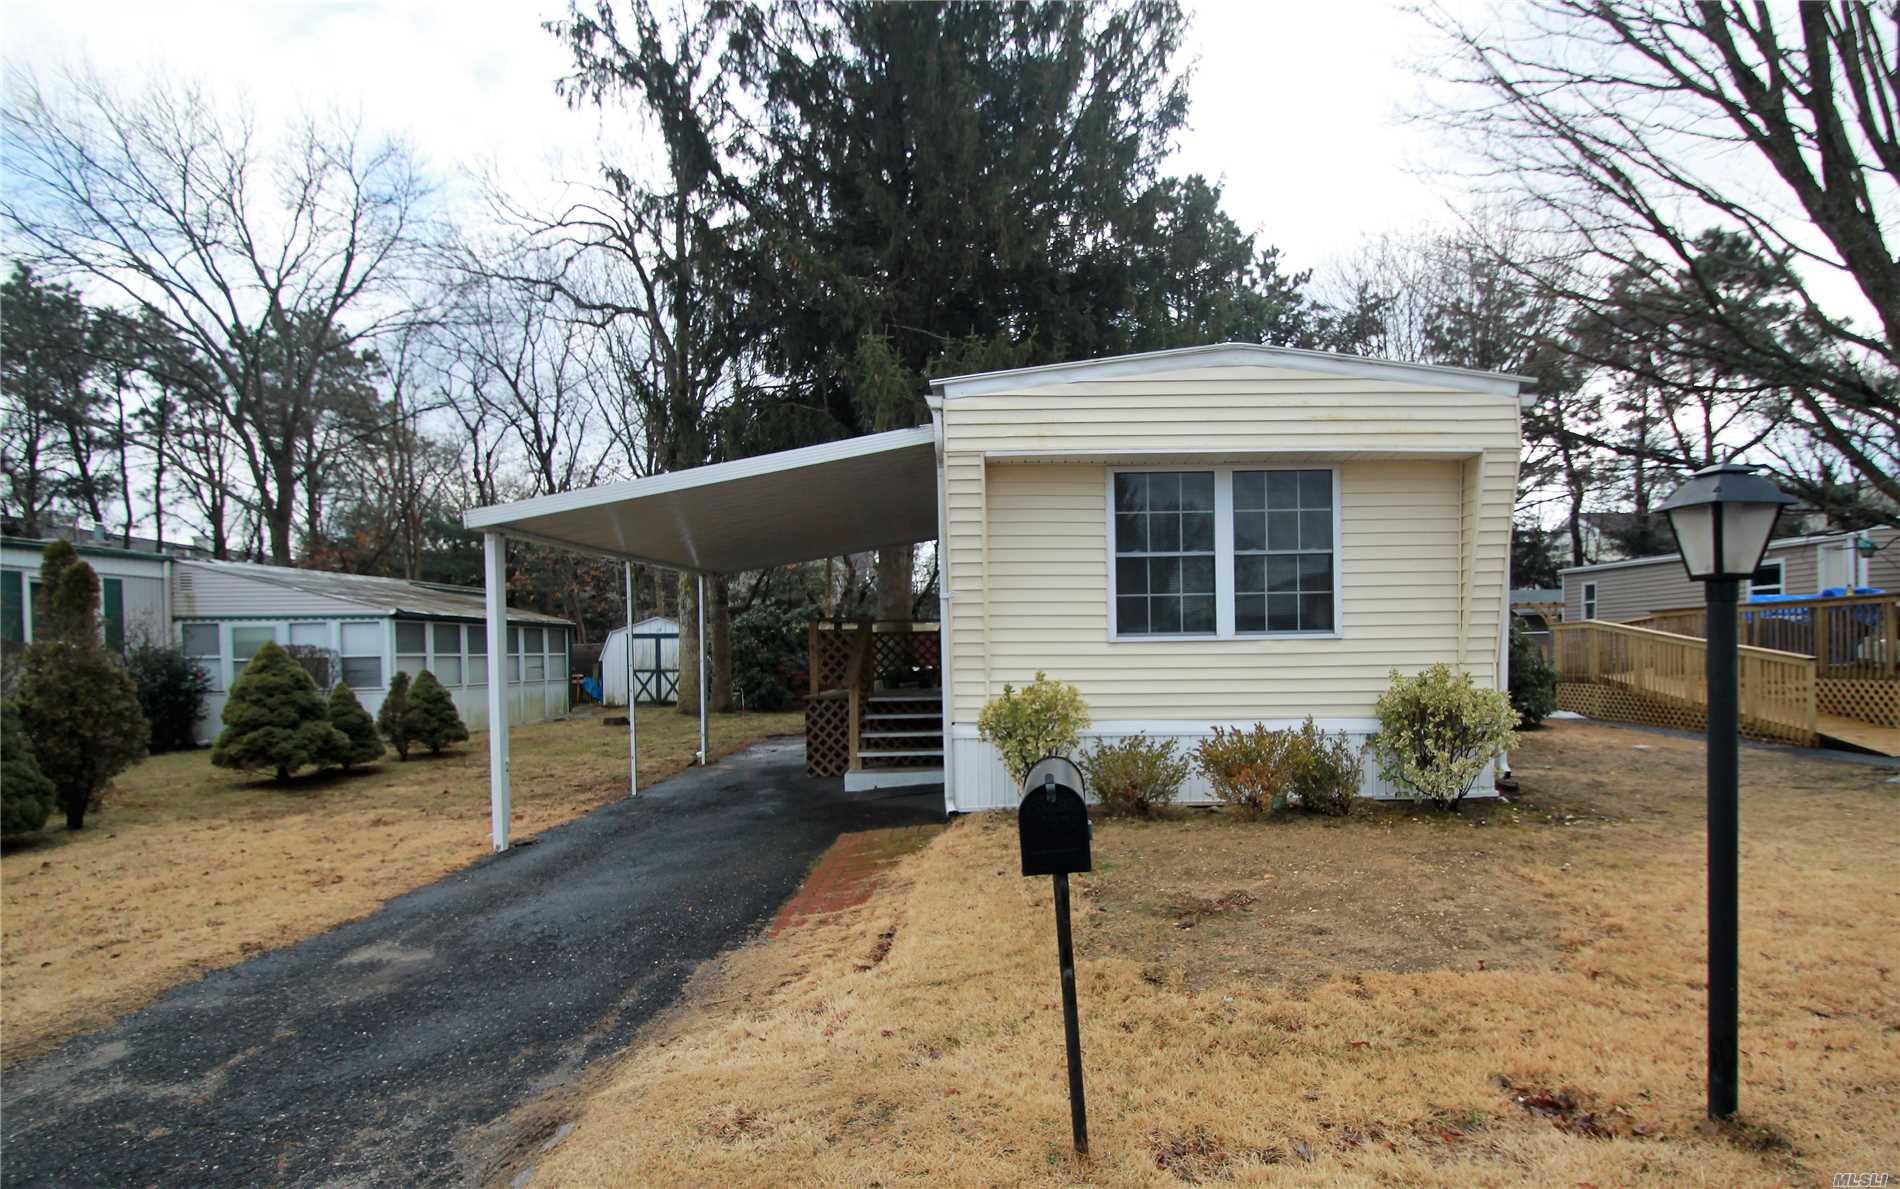 Bright, Inviting And Move-In Ready. New Roof, Insulation, Siding, Skirting In 2017. New Hw Heater In 2018. Separate 10Ft. X 15Ft. Secure Shed With Power. All Furnishings And Household Items Included. Park Hoa (Appx $980/Month) Includes Lot Rental, Sewer, Water, Garbage Pickup, Street Snowplowing. Buyers Must Qualify For Park Residency With Good Credit Score And Income Verification Proving $3000/Mo. Income After Other Obligations. Nys Star Rebate Available To Resident Owners.